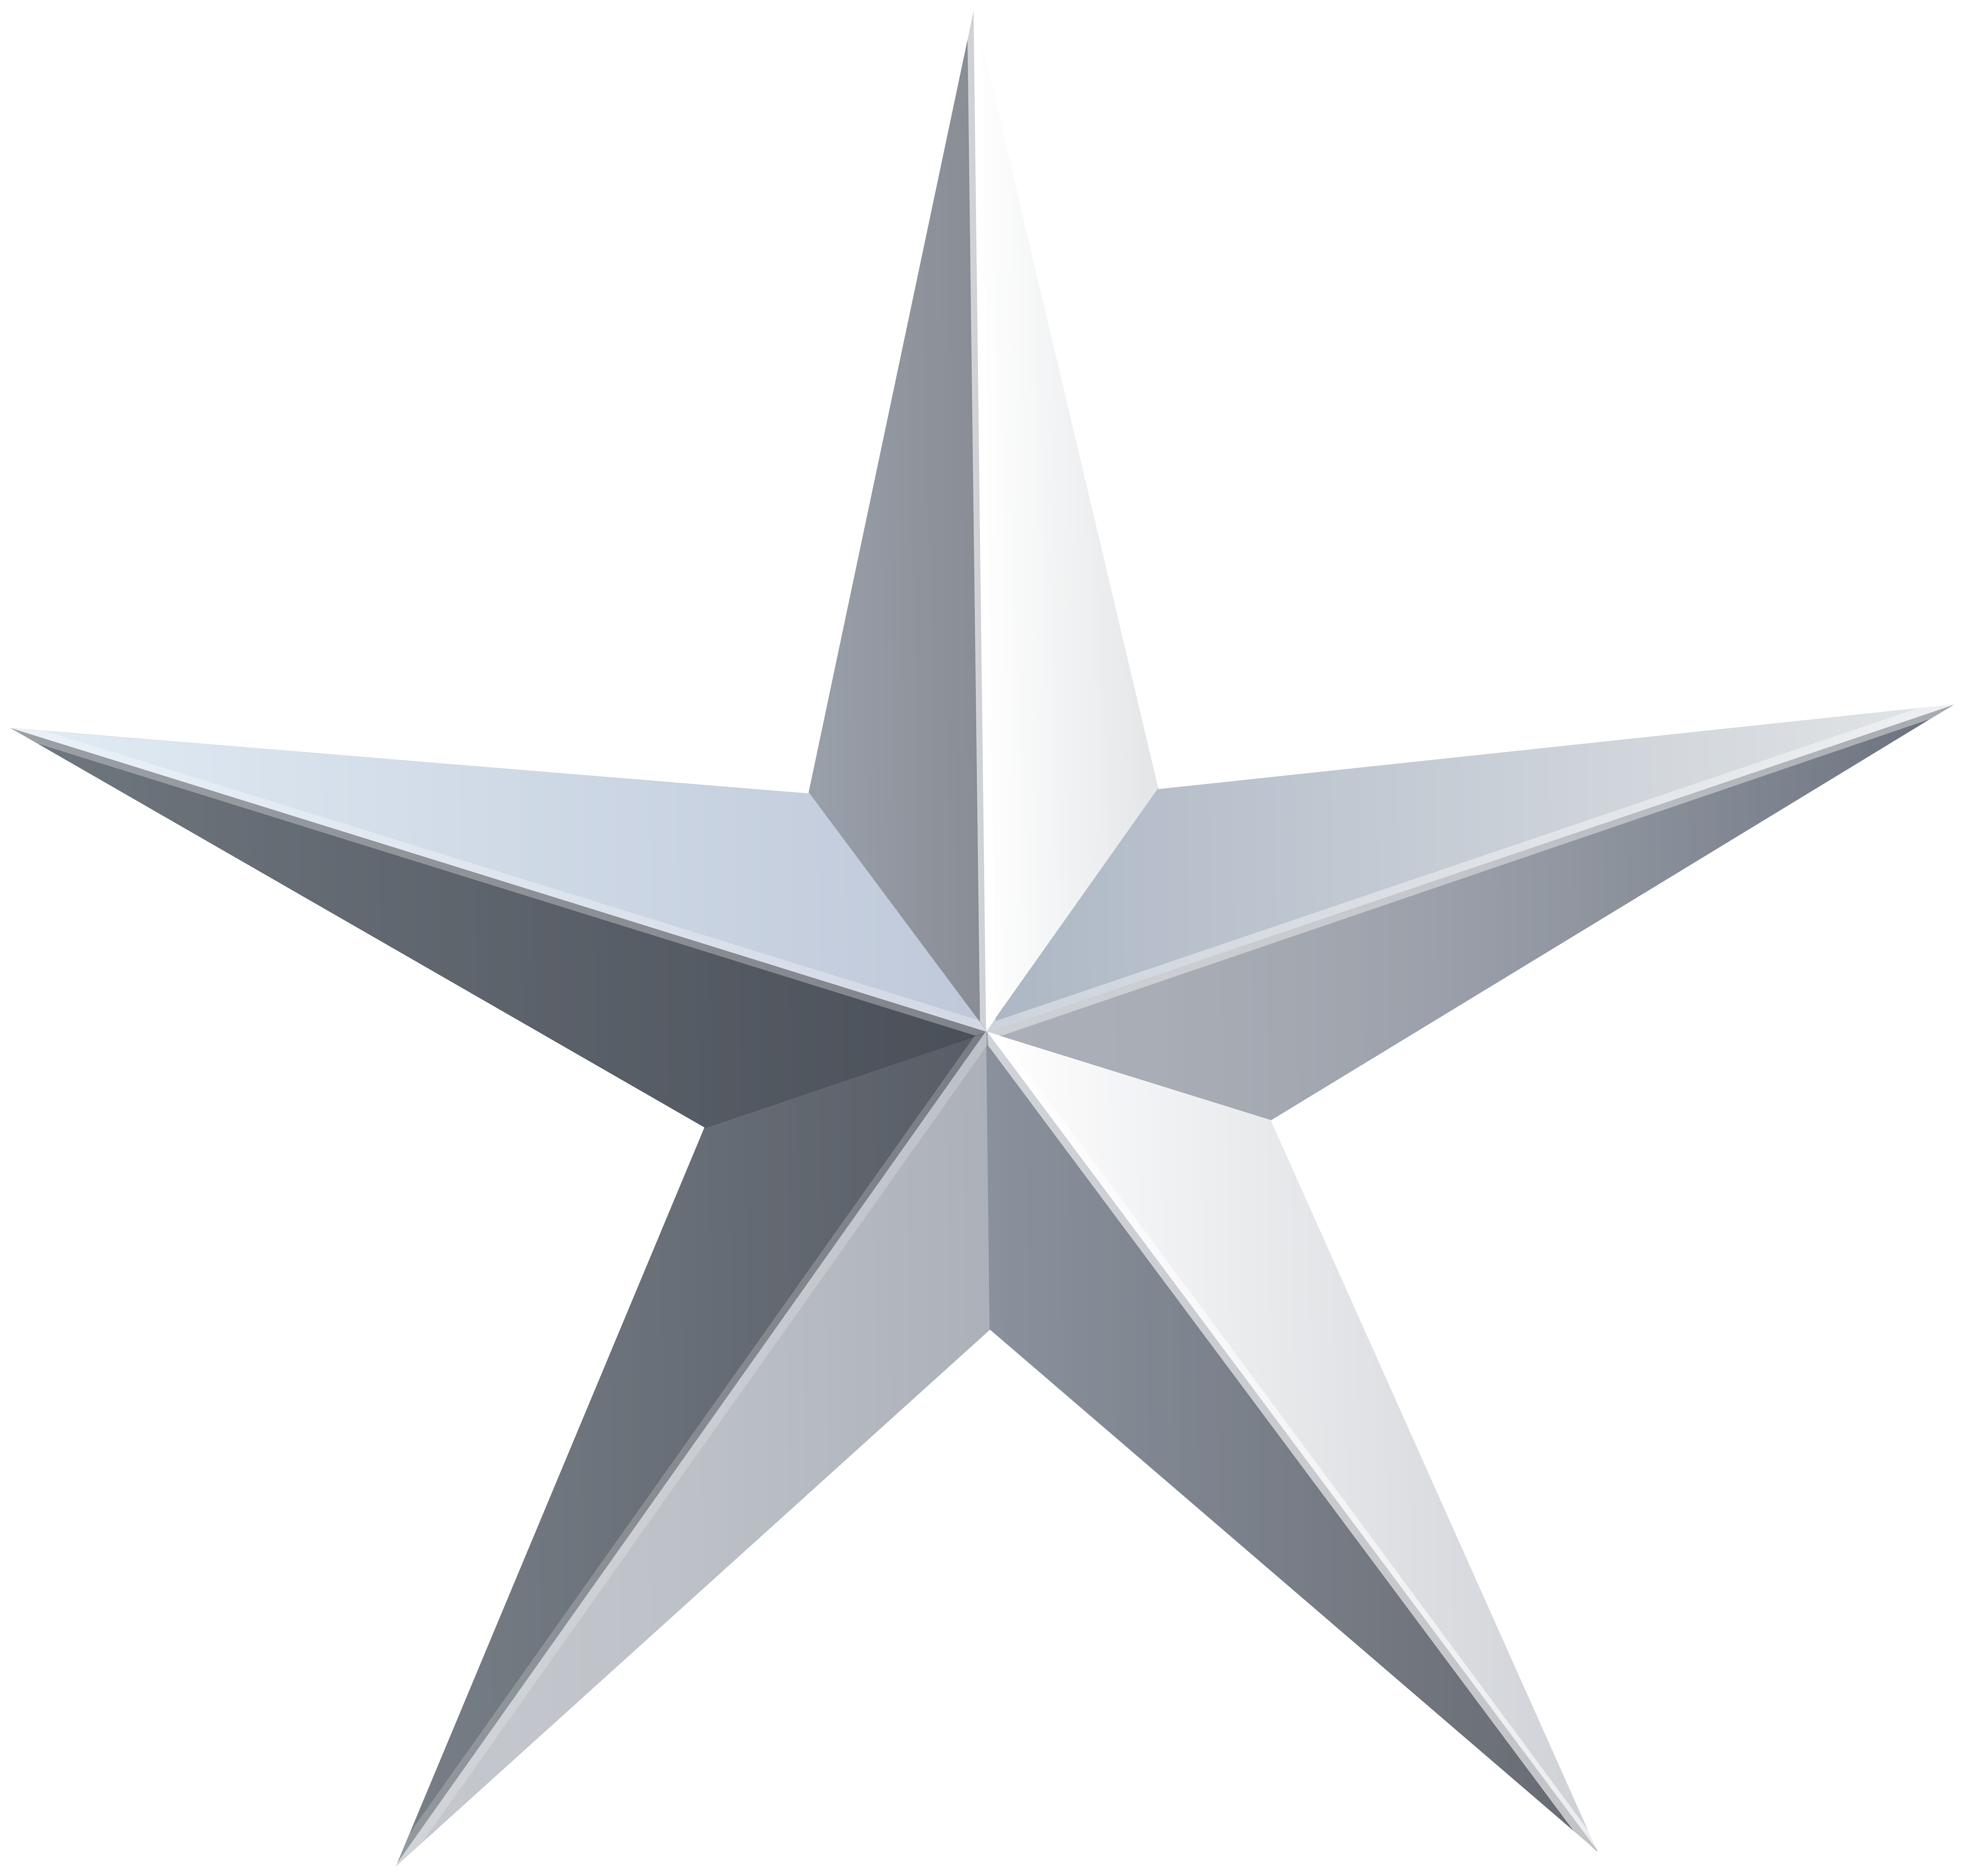 Solid star clipart clipart library download Silver Star Transparent PNG Clip Art | Starry | Pinterest | Silver ... clipart library download